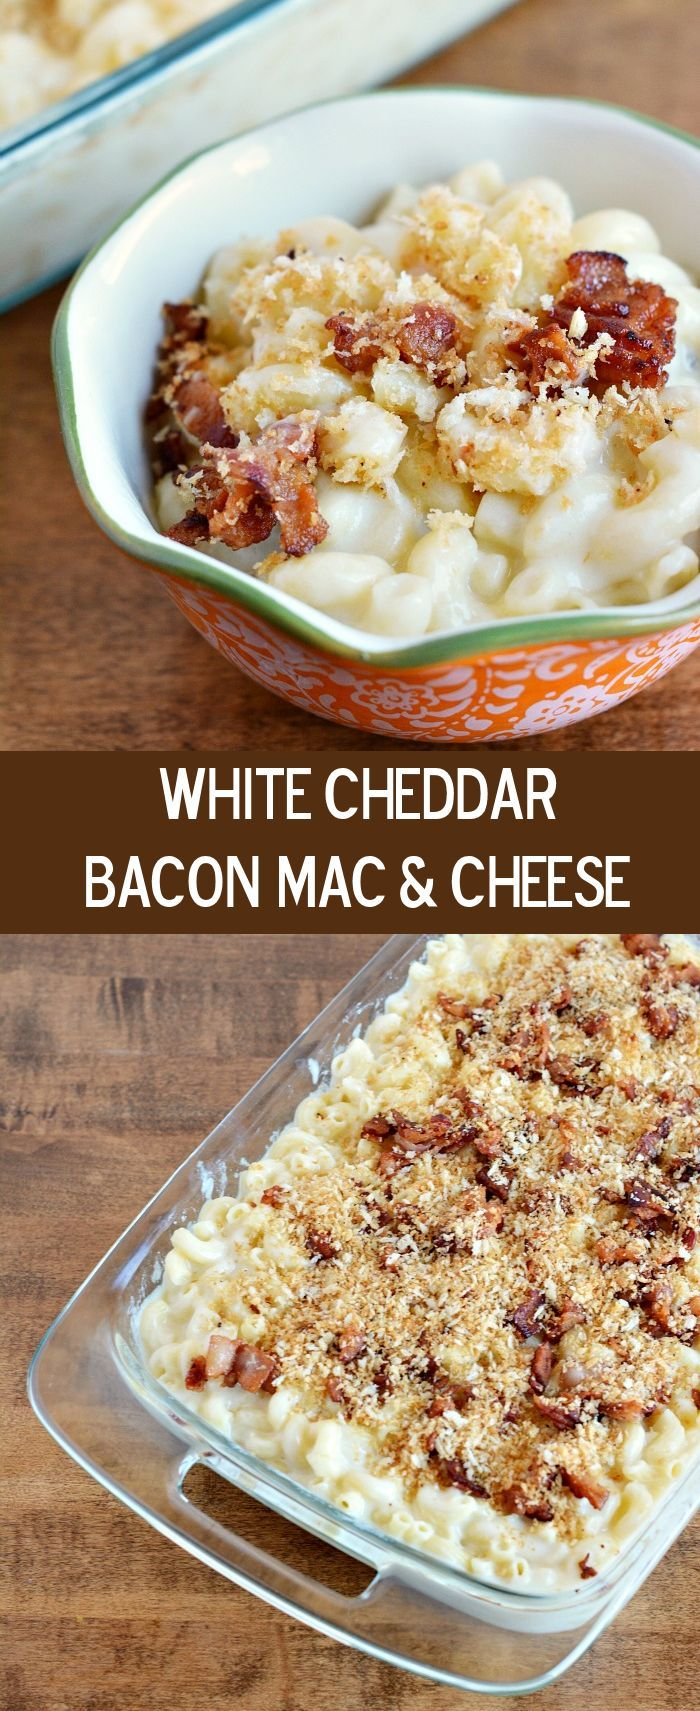 white cheddar bacon macaroni and cheese recipe